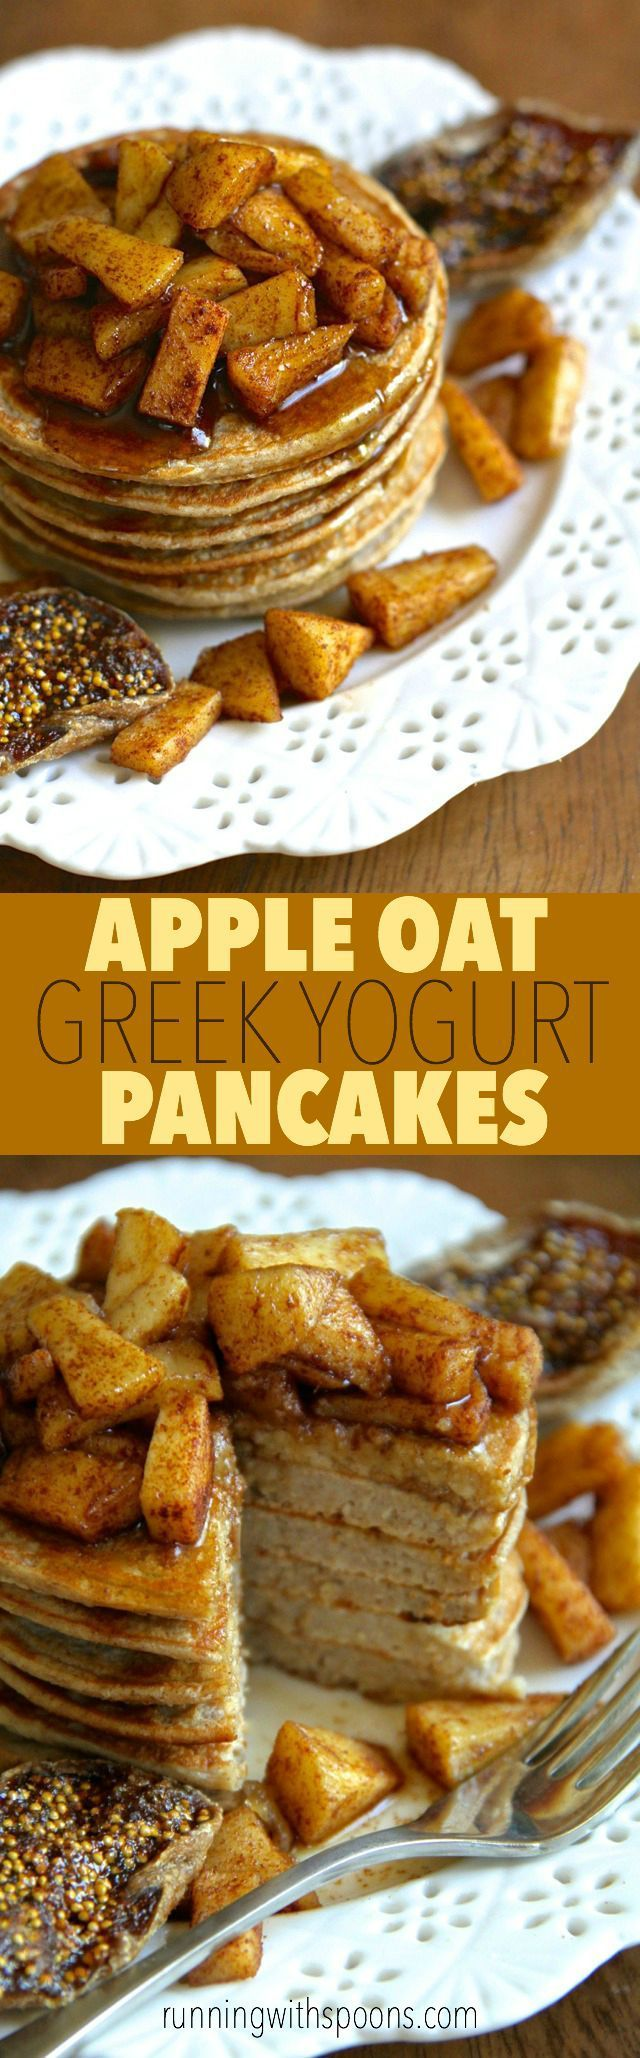 Light, fluffy, and loaded with apples and cinnamon, these Apple Oat Greek Yogurt Pancakes make an easy and delicious breakfast! Gluten-free thanks to the oats, they'll keep you satisfied all morning with over 20g of protein!